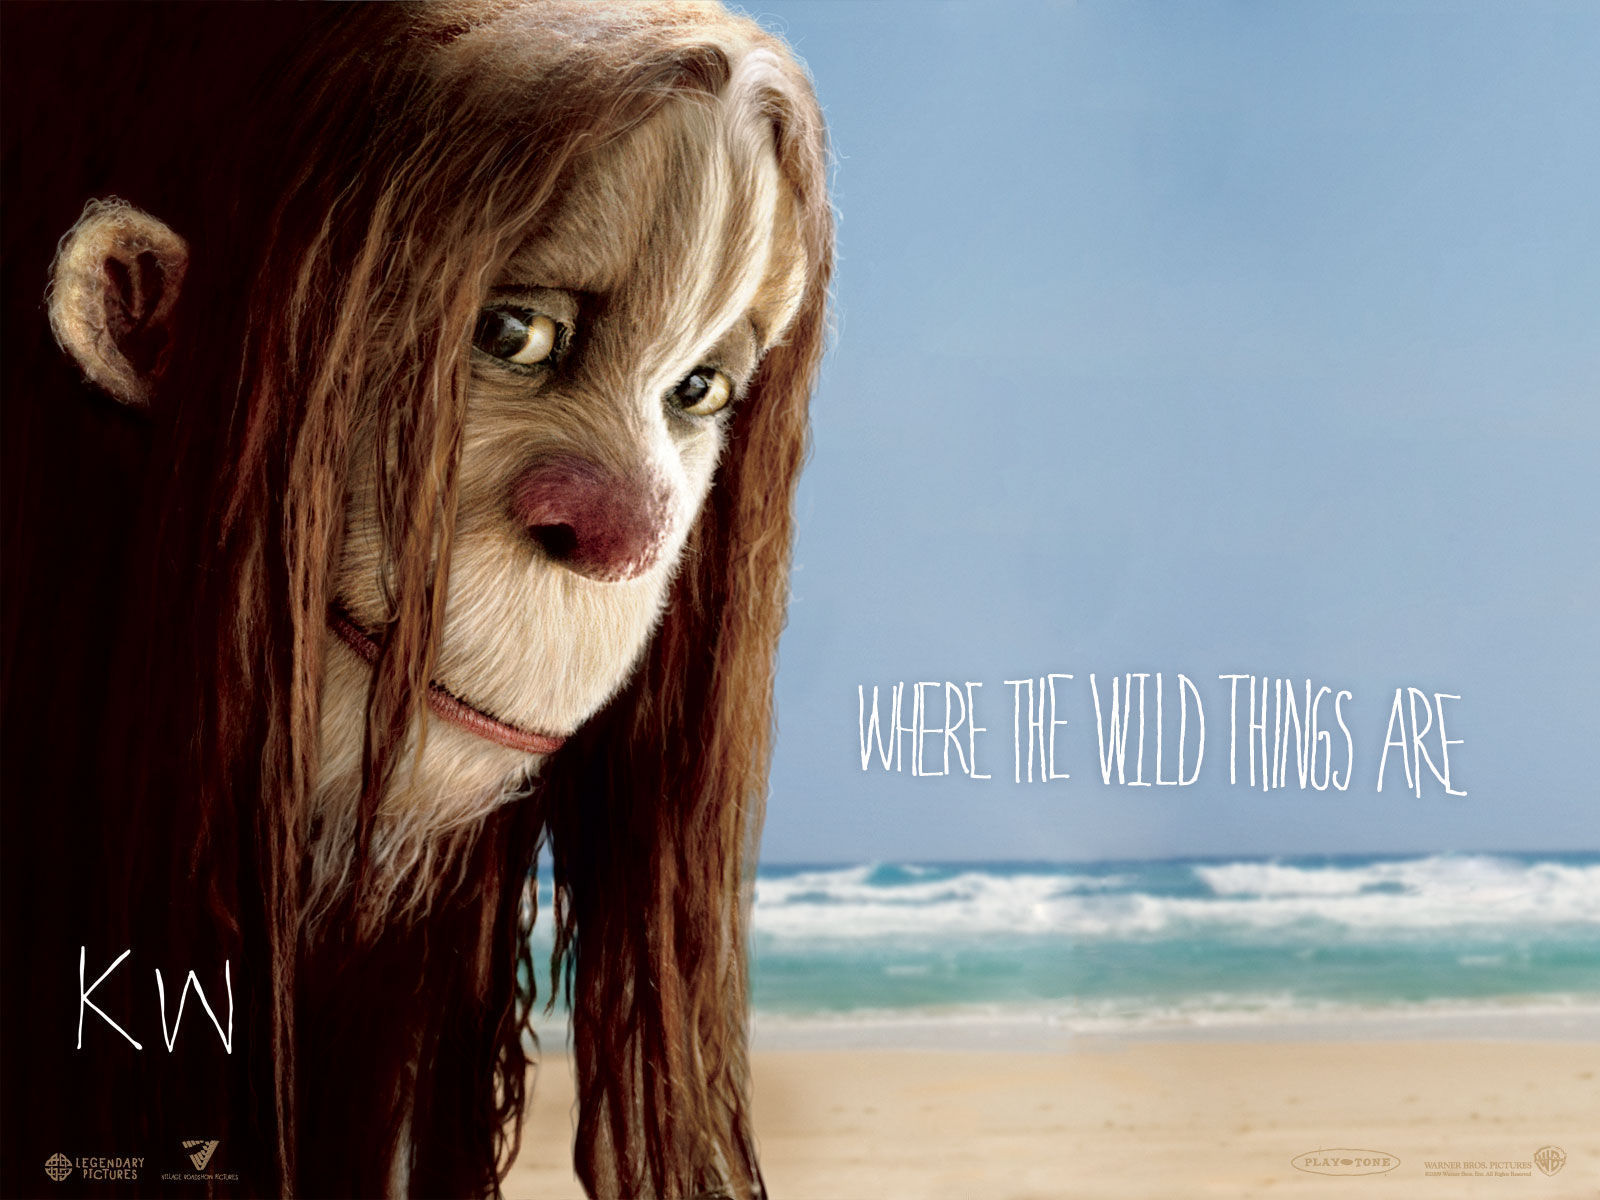 kw where the wild things are wallpaper 11064151 fanpop